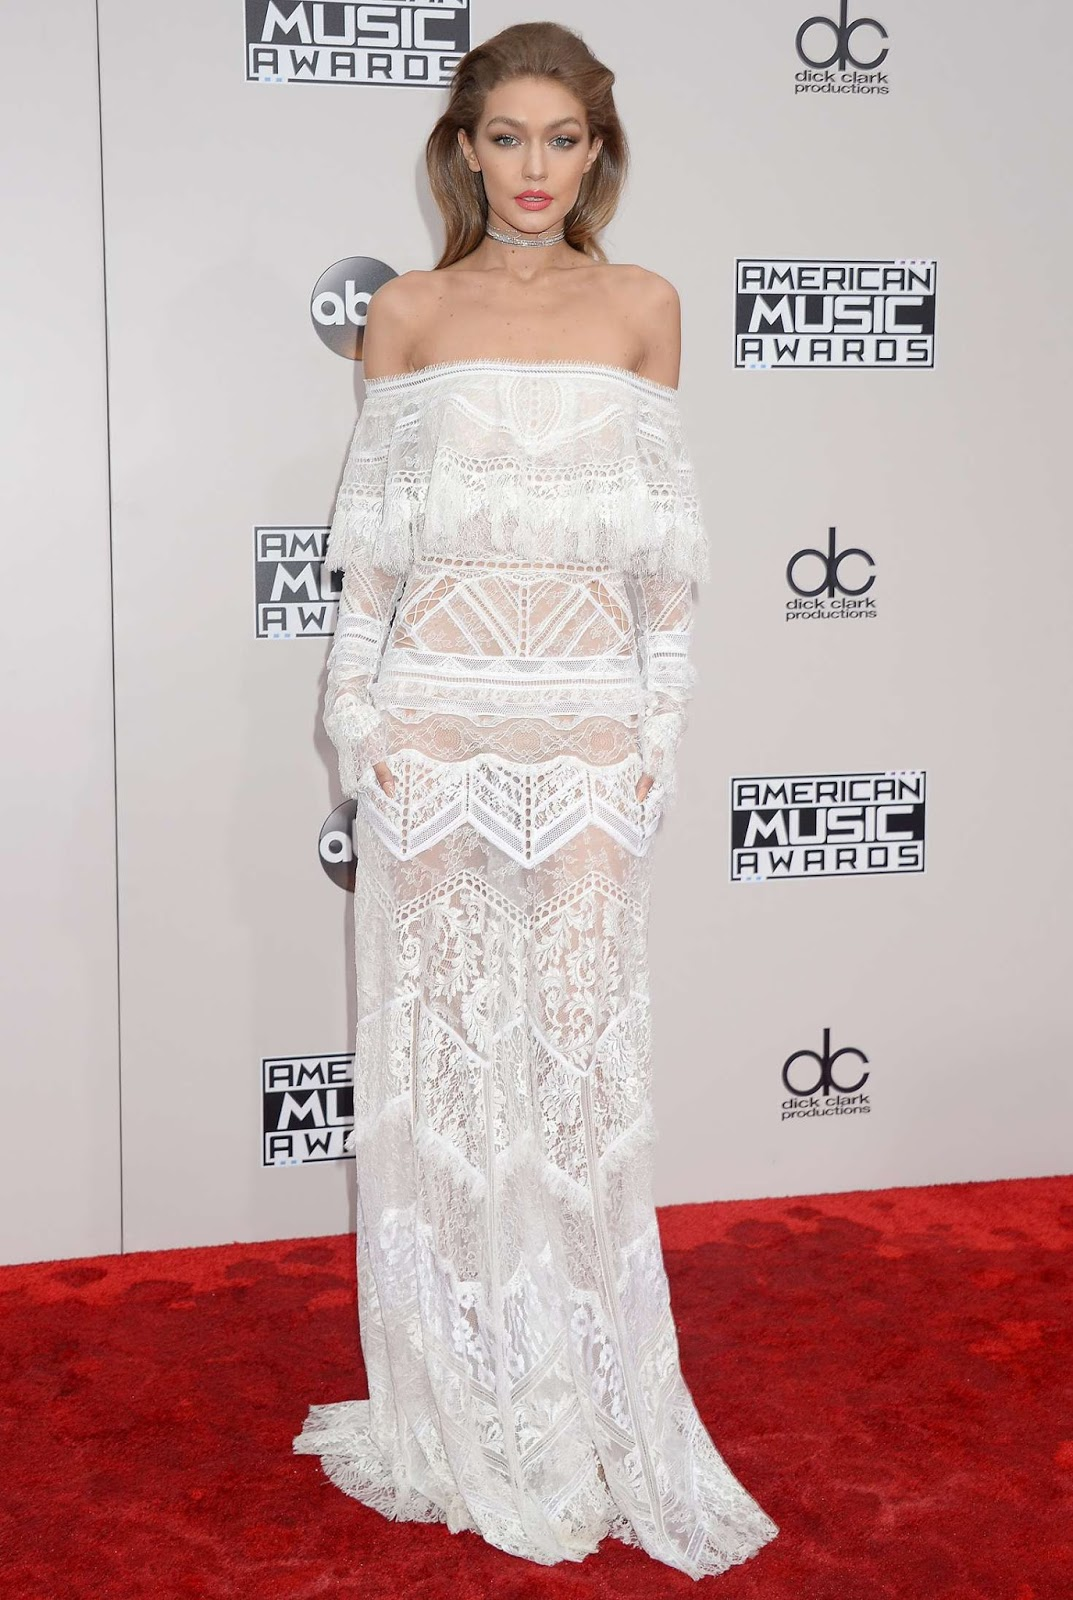 Gigi Hadid goes sans underwear for the 2016 American Music Awards in Los Angeles